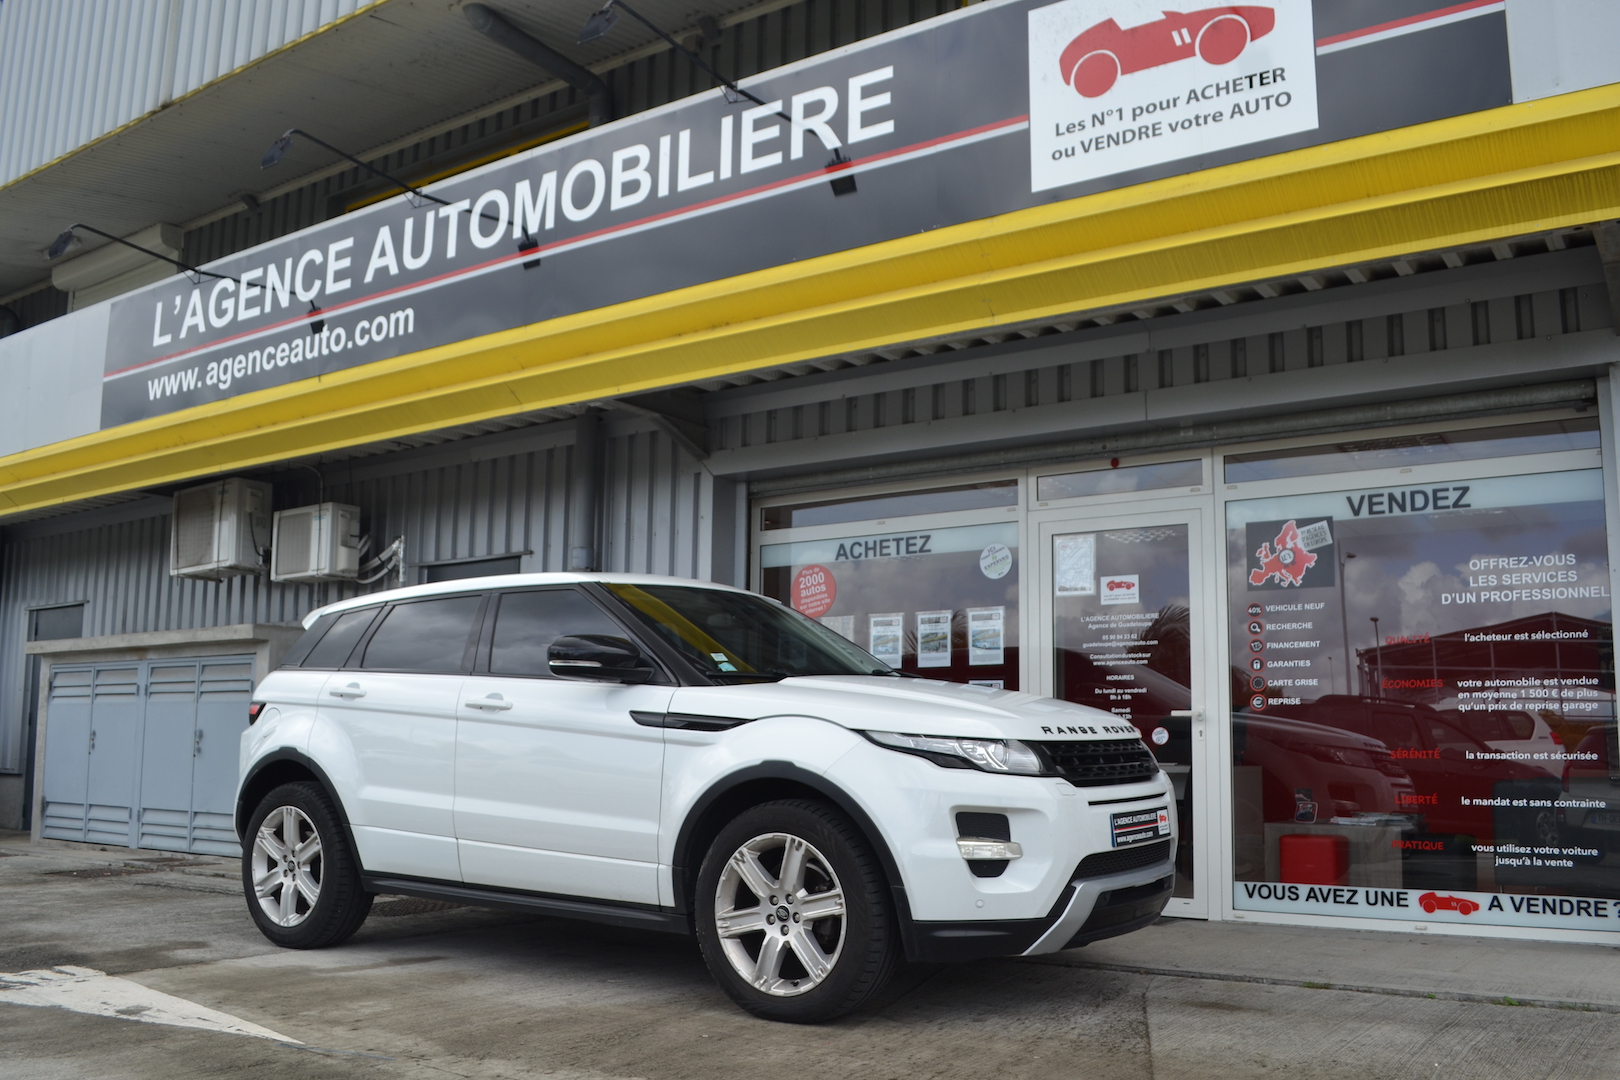 land rover evoque range rover evoque ed4 dynamic occasion guadeloupe pas cher voiture. Black Bedroom Furniture Sets. Home Design Ideas